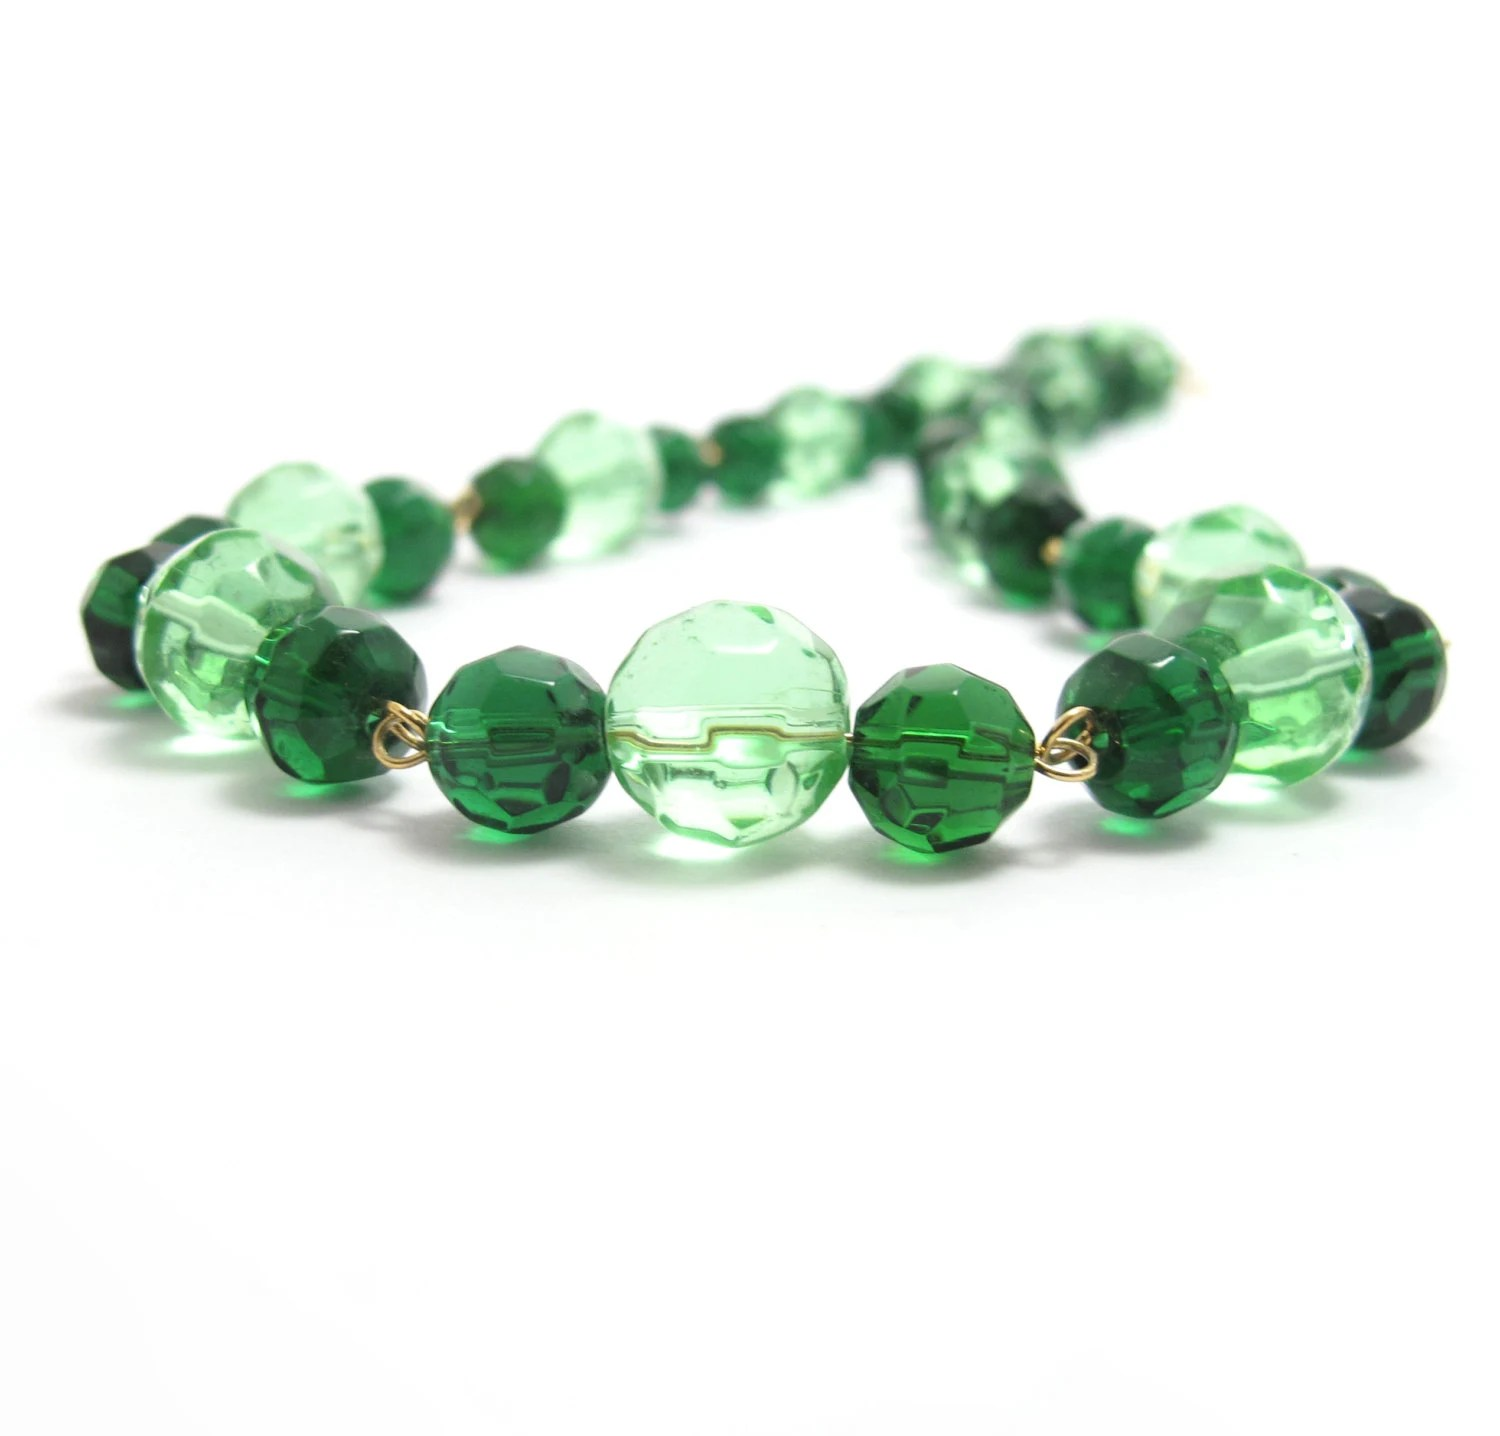 Green Beaded Necklace, Faceted Glass Links - MoonlightShimmer